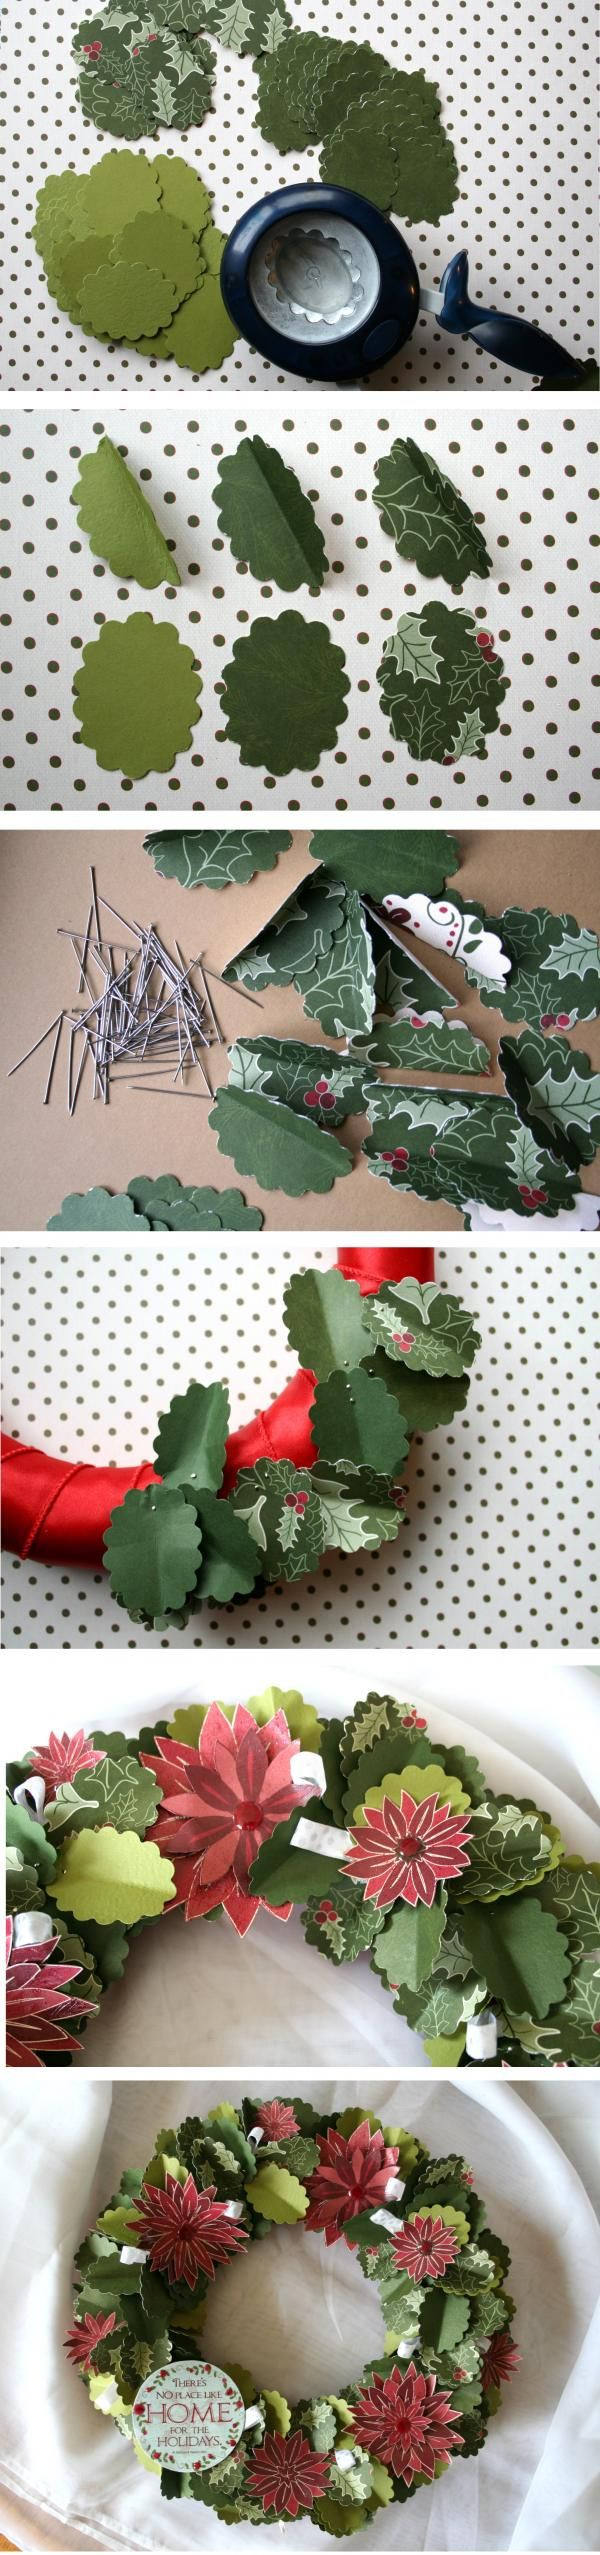 Paper Holiday Wreath Tutorial by @Tania Willis www.fiskateers.com